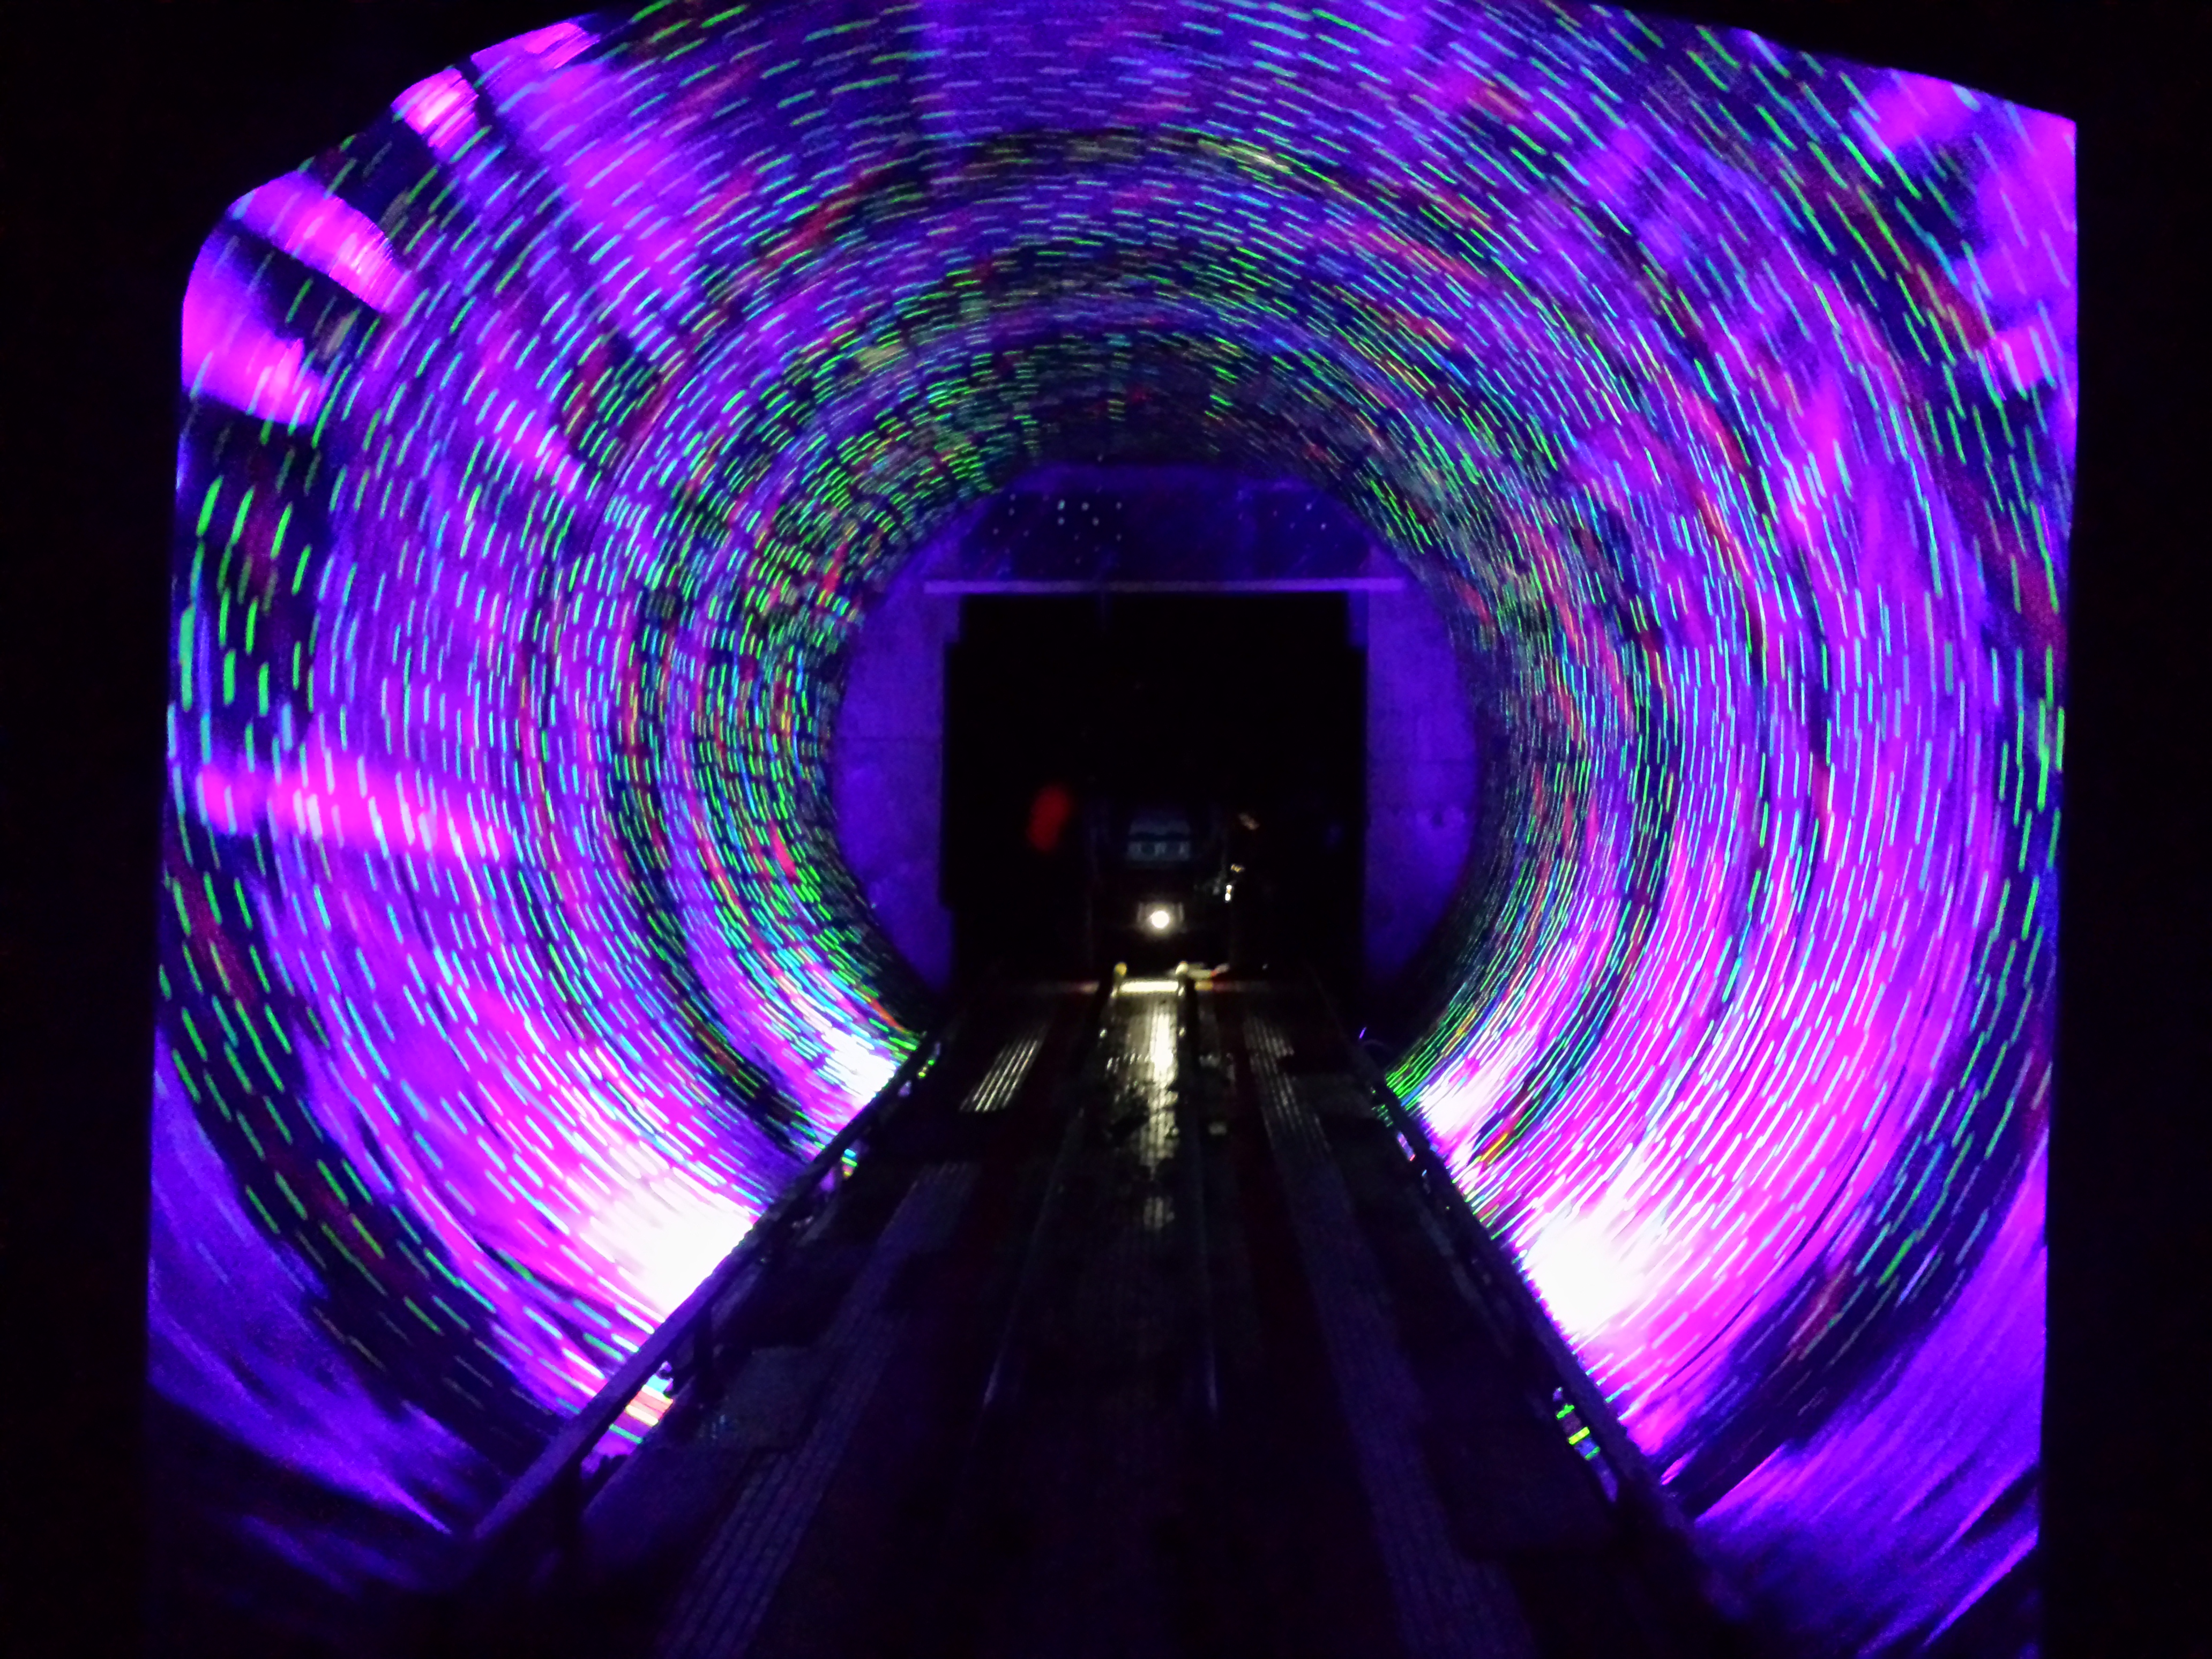 largest drive-thru vortex tunnel